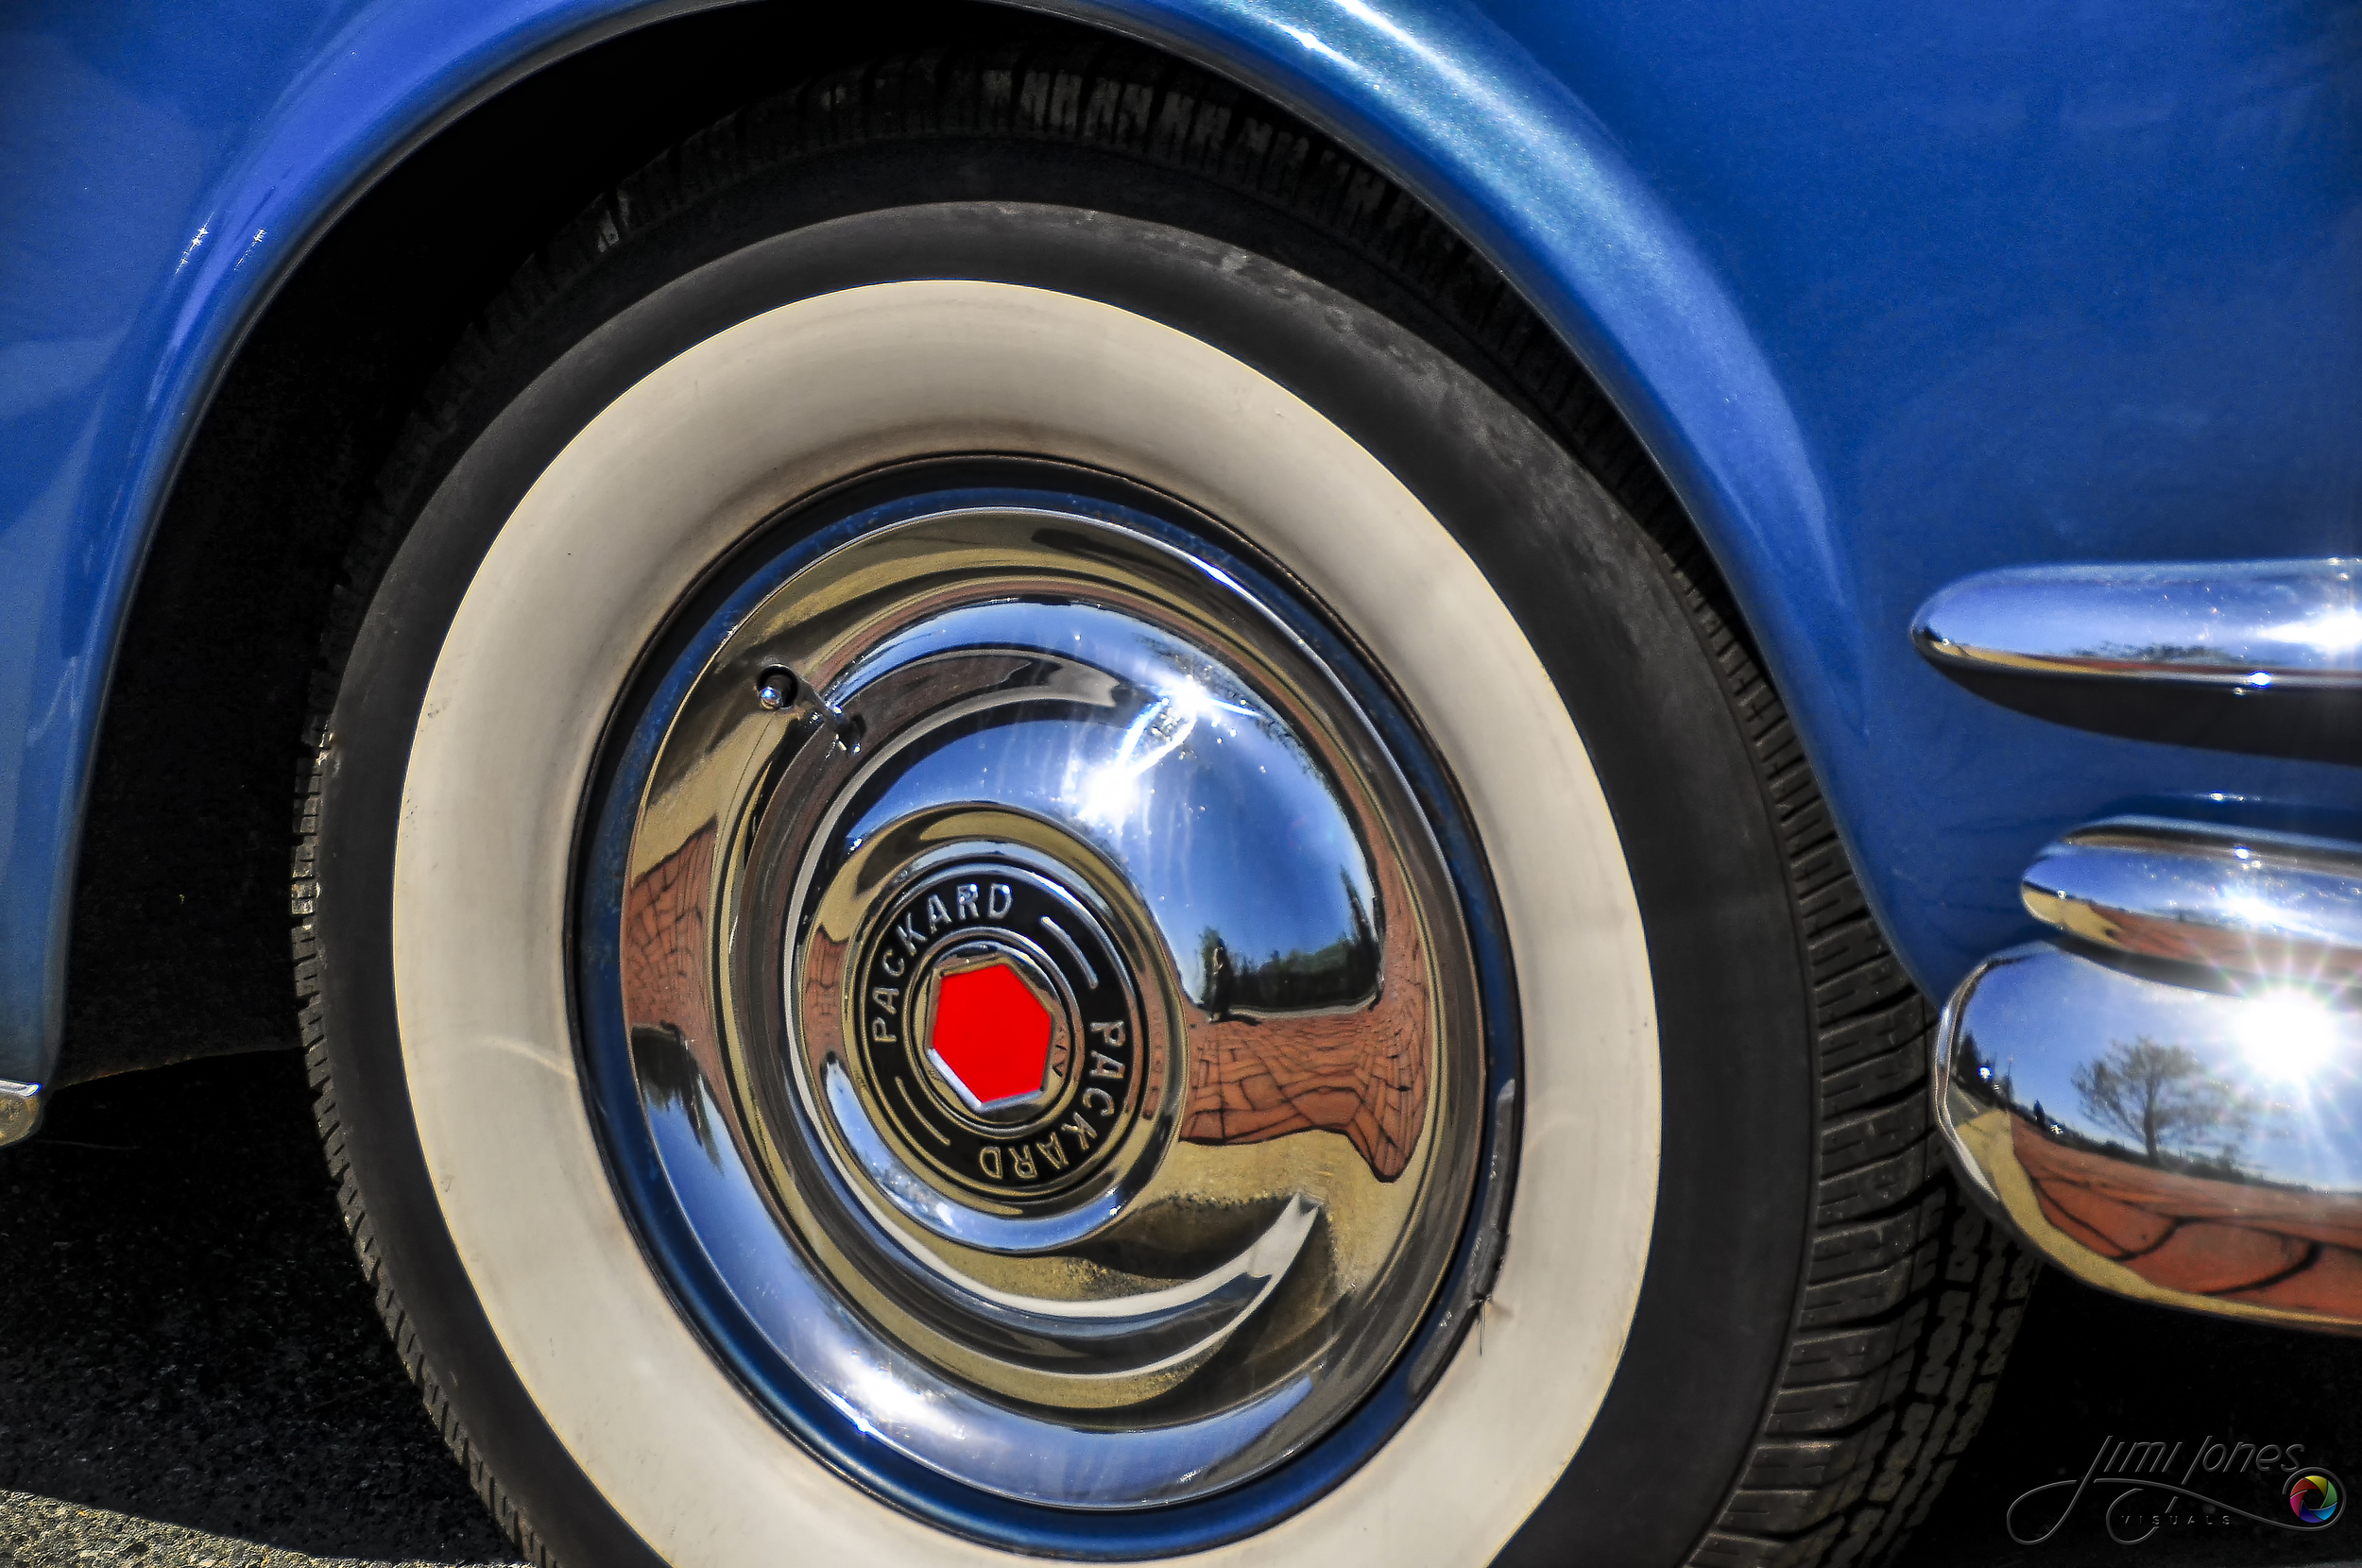 1954 Packard Front Wheel Cover